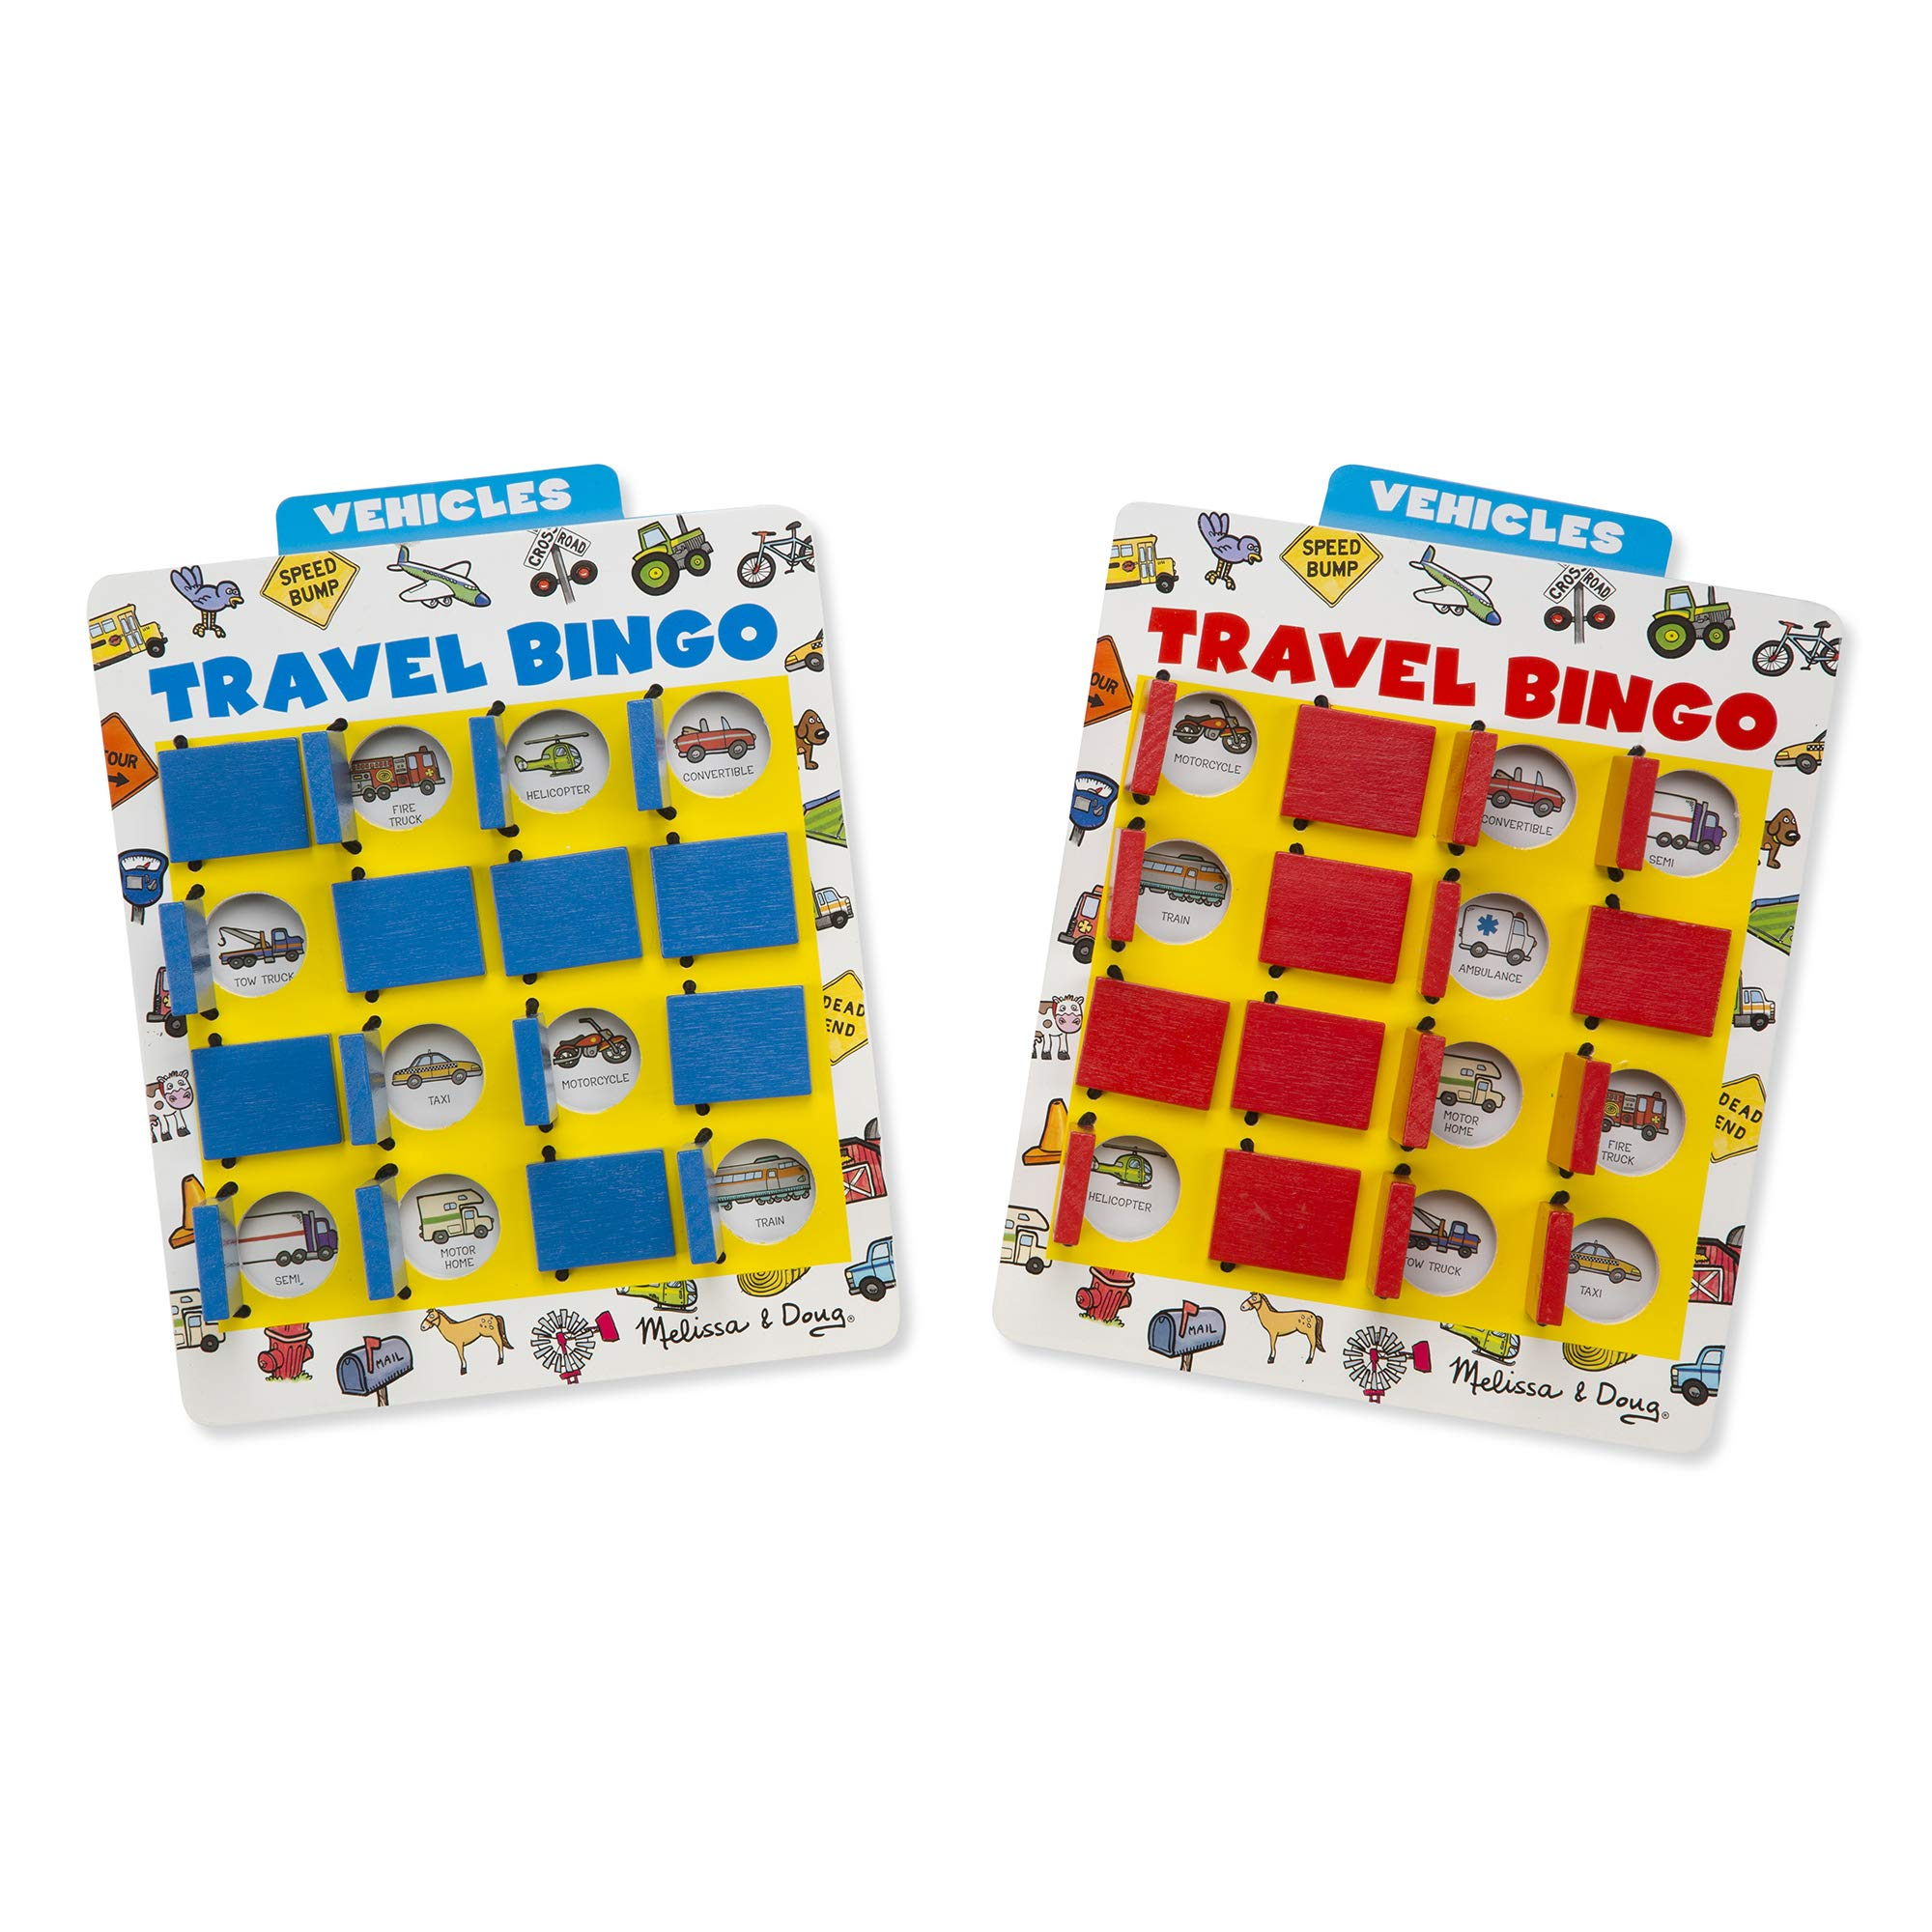 Melissa & Doug Flip to Win Travel Bingo Game - 2 Wooden Game Boards, 4 Double-Sided Cards by Melissa & Doug